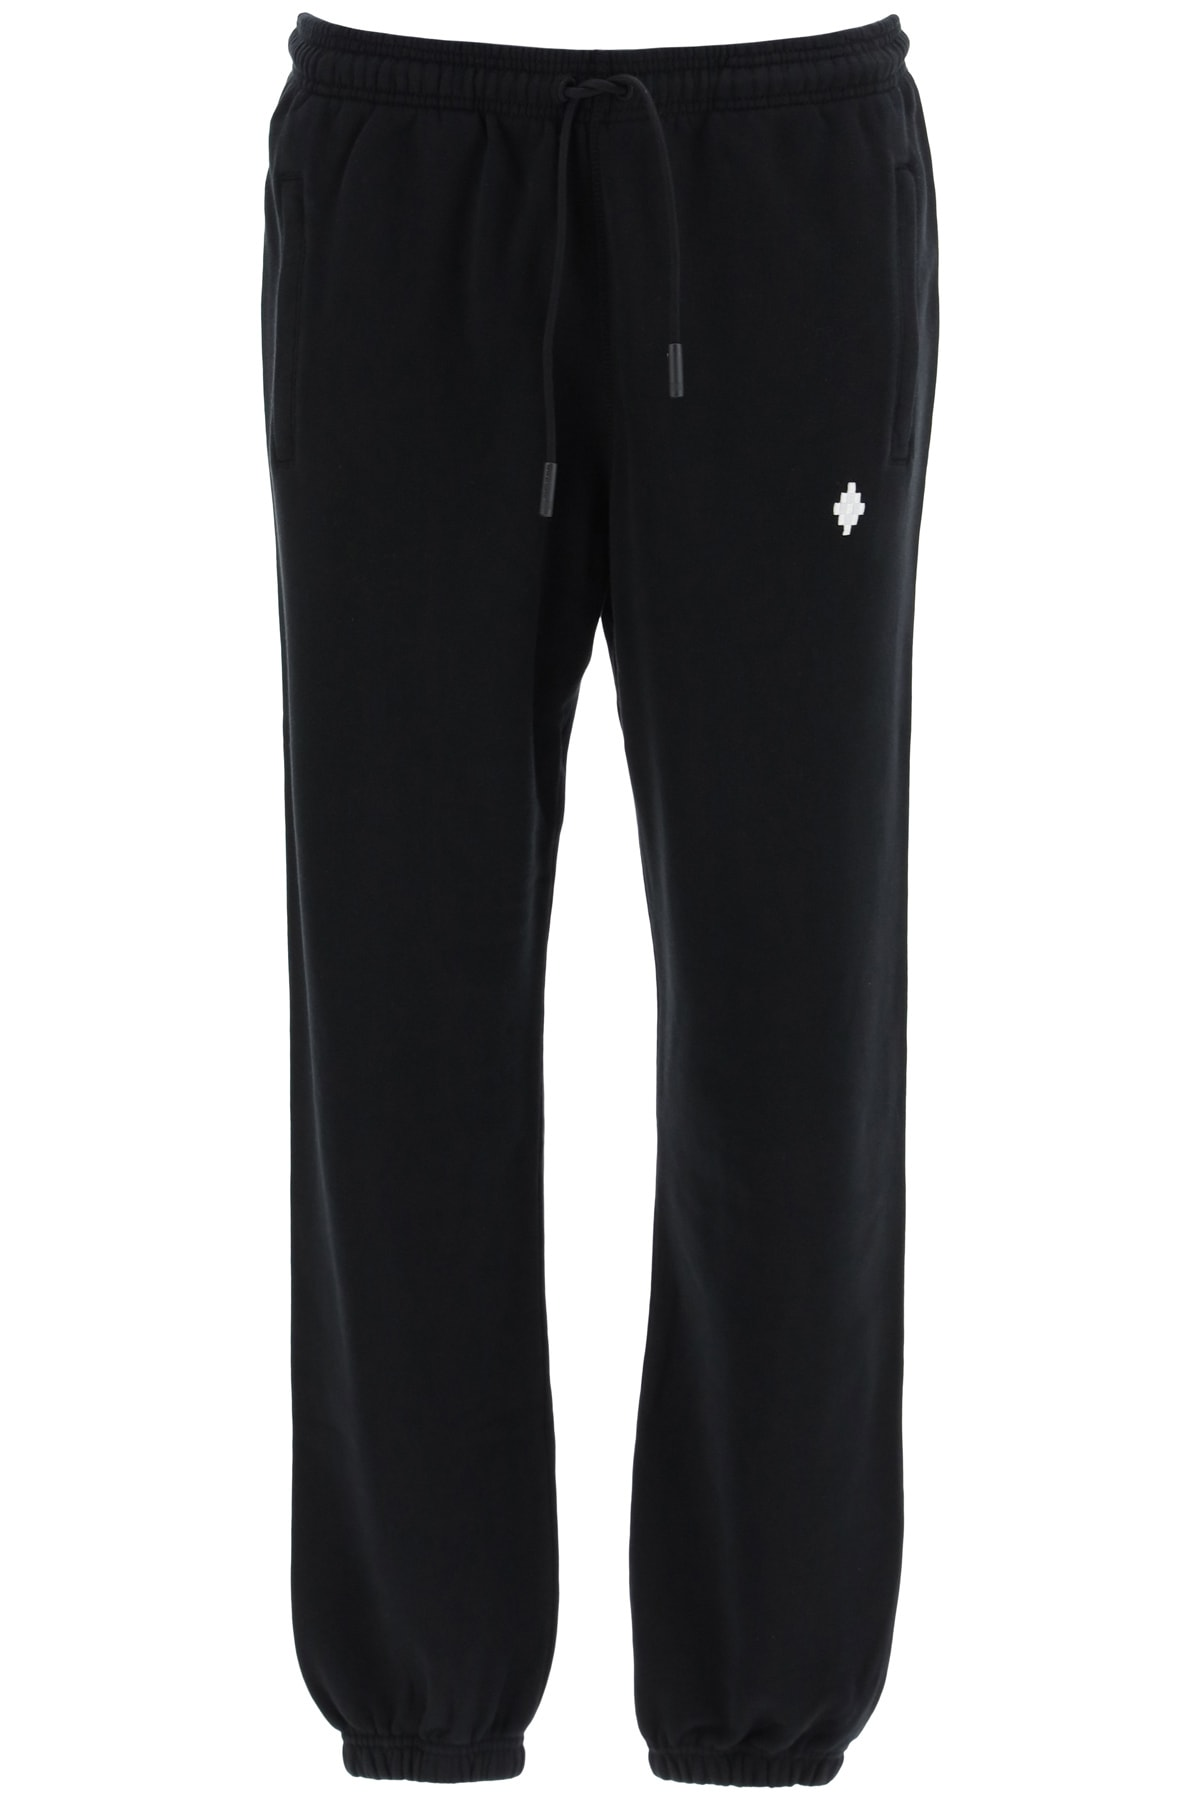 Marcelo Burlon County Of Milan Cottons FIRE CROSS SWEATPANTS